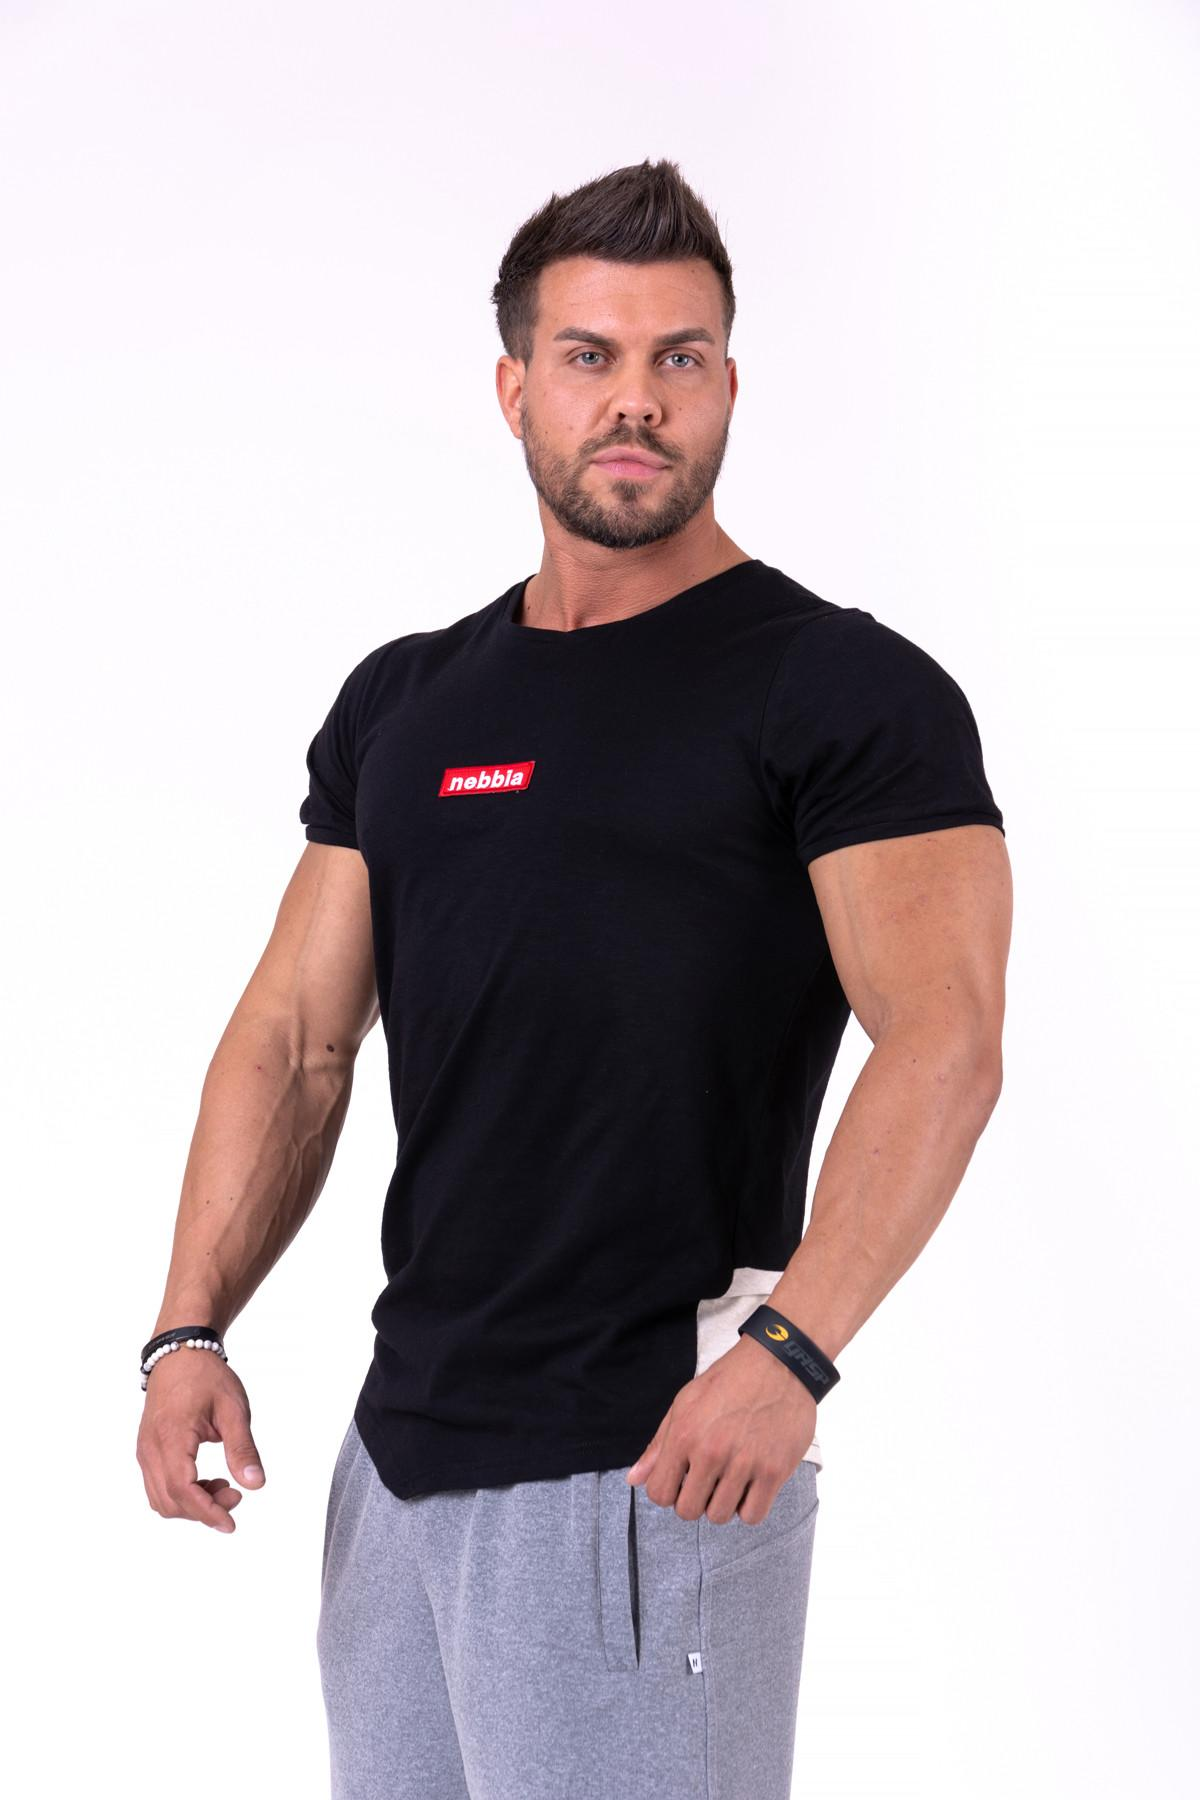 V-typical T-shirt N142 nebbia fitness